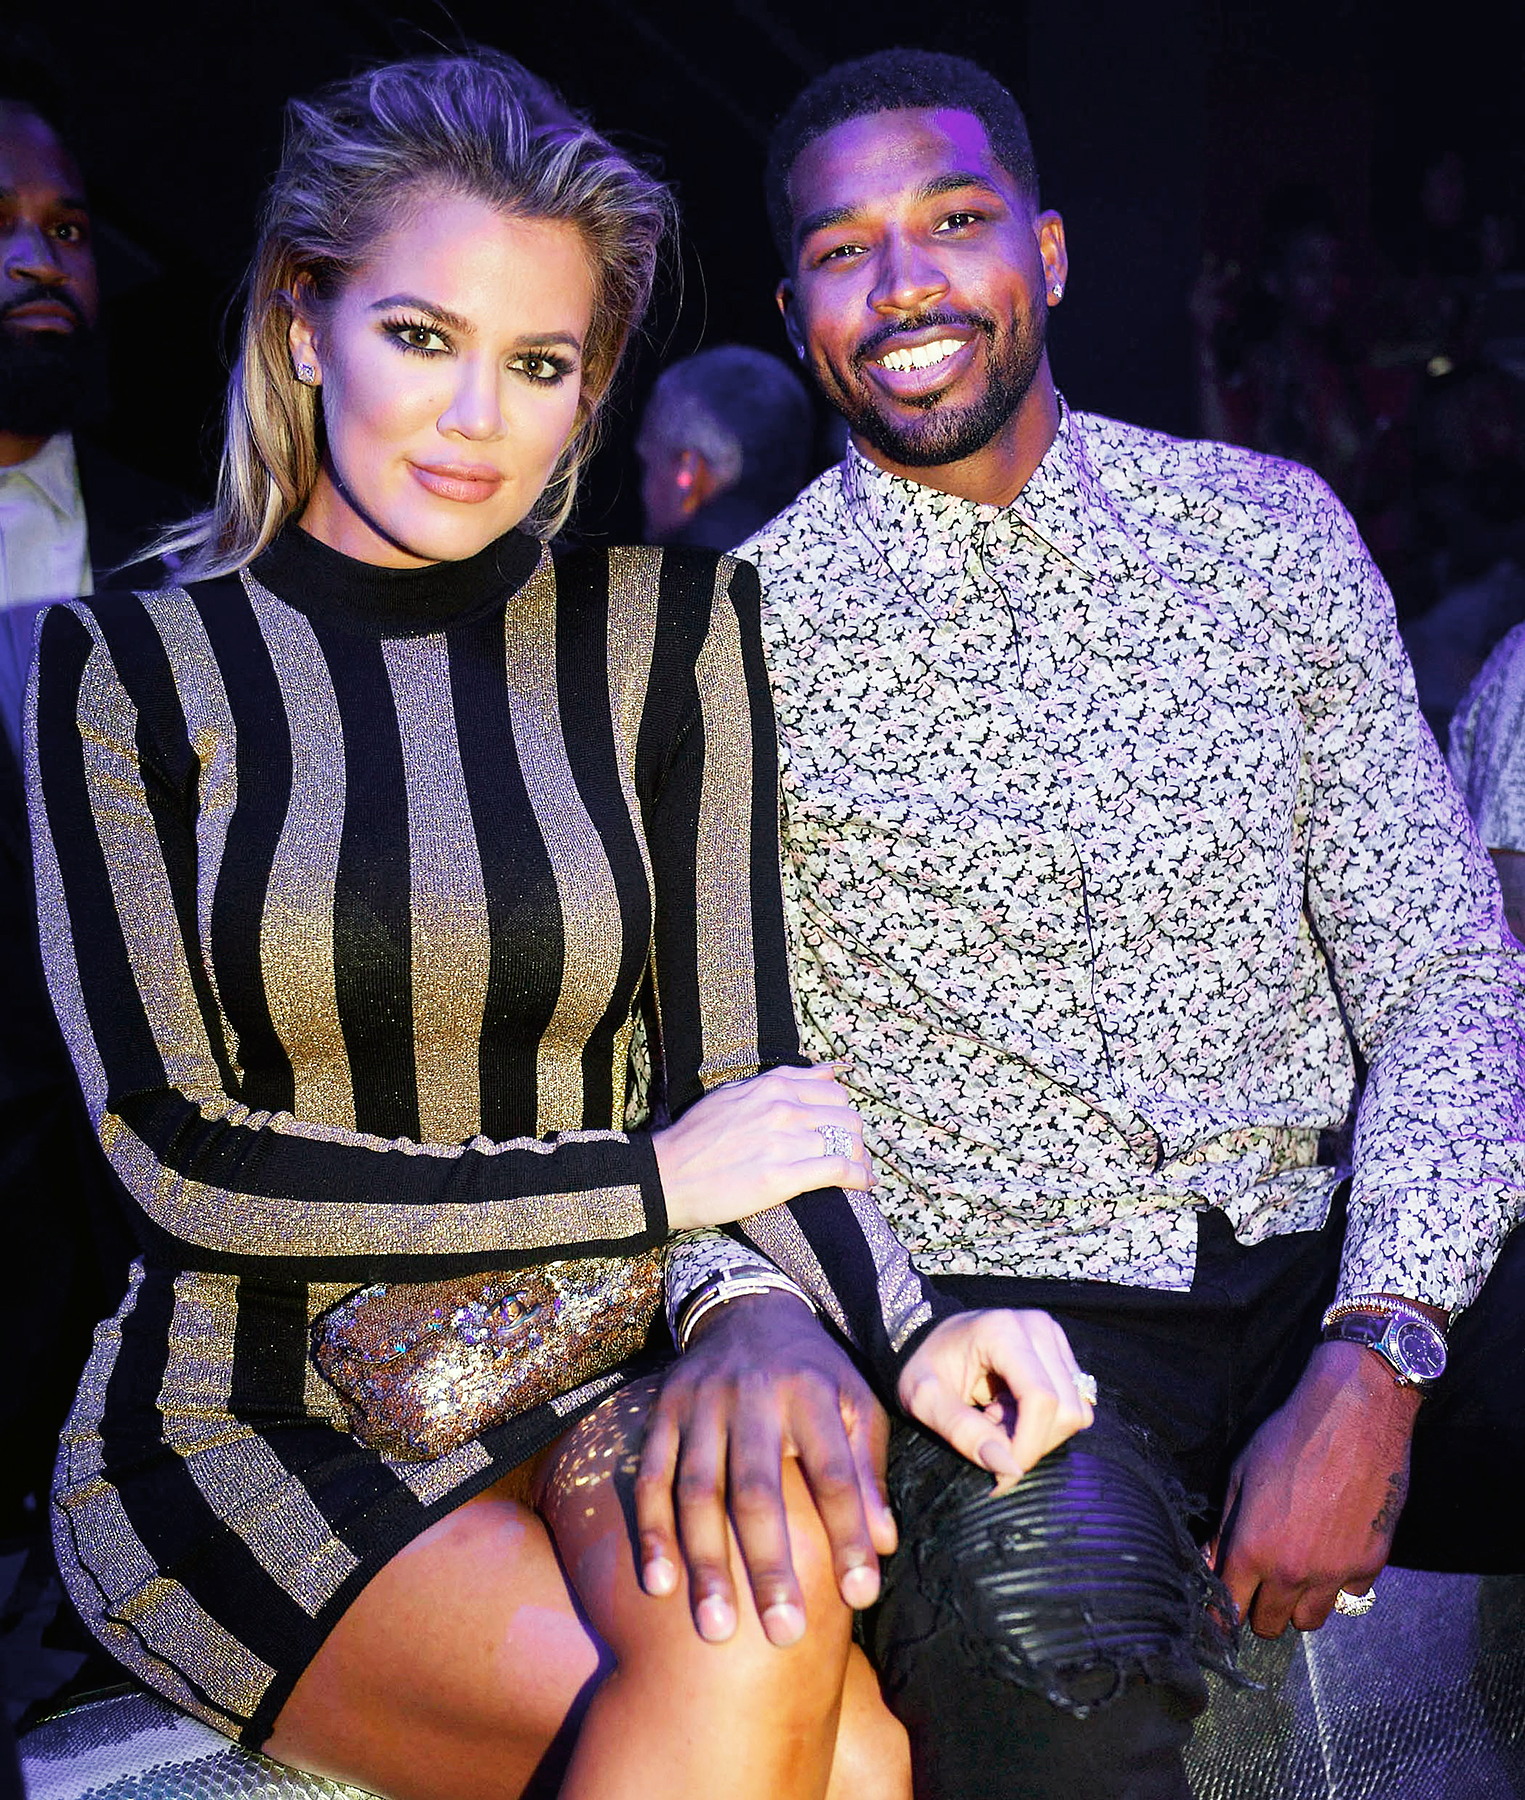 Khloe Kardashian Threw an Over-the-Top Baby Shower in Los Angeles